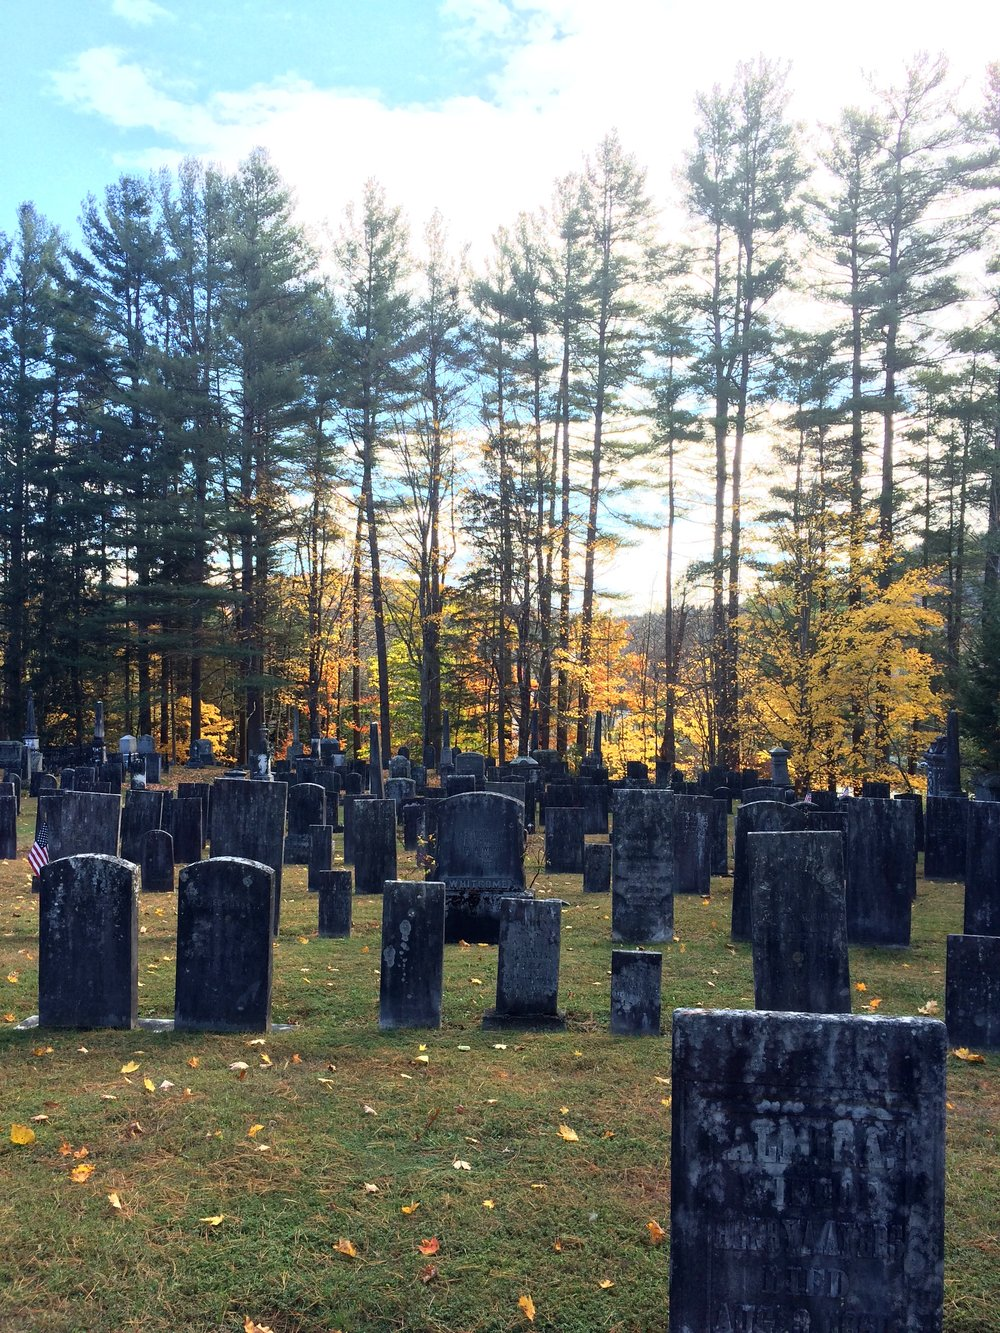 The graveyard in Grafton, Vermont